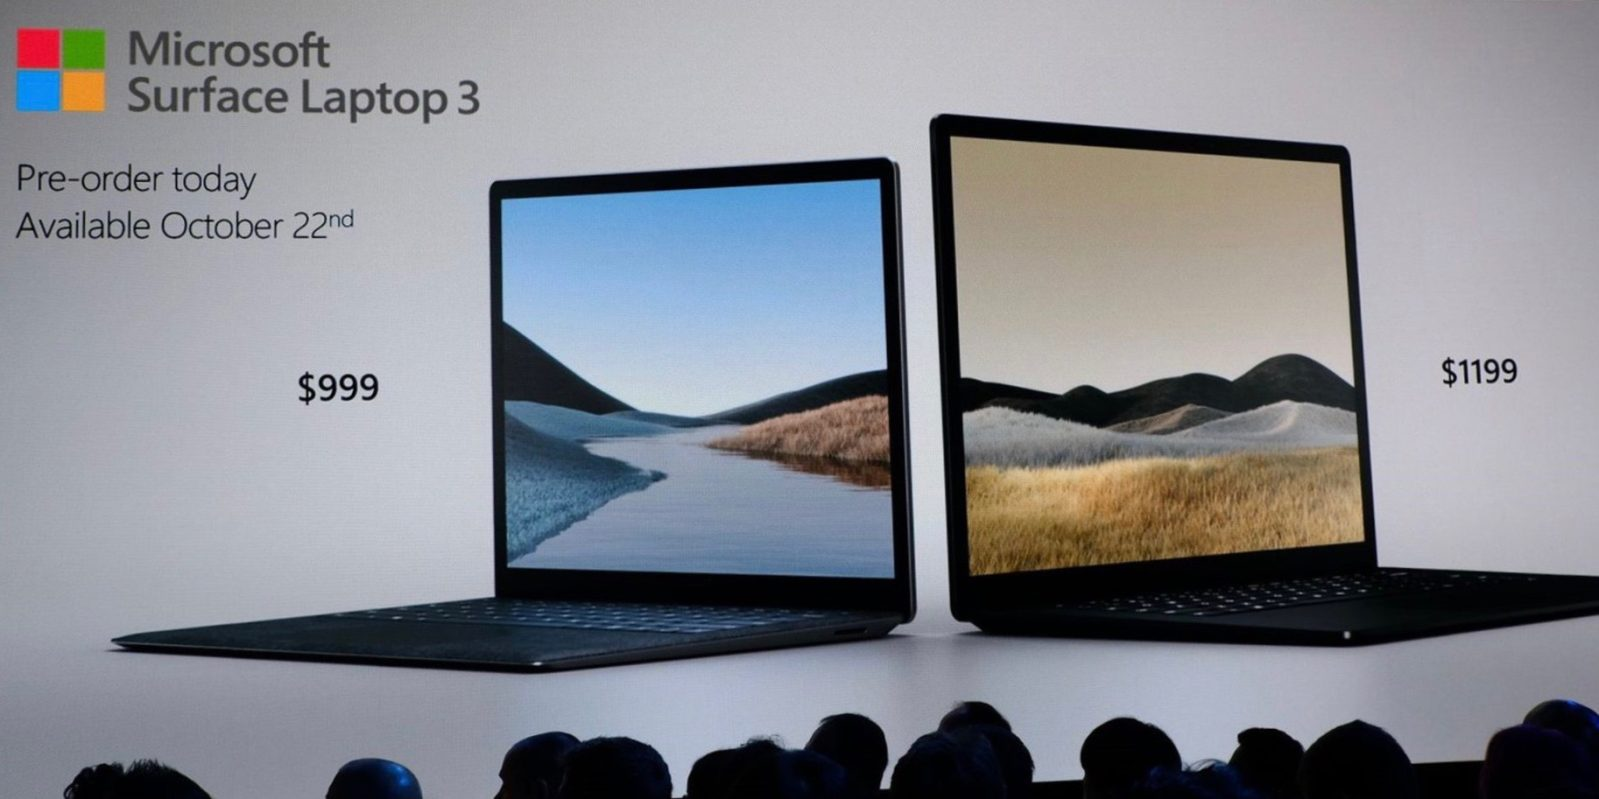 Microsoft says new Surface Laptop is 3x more powerful than MacBook Air, has removable SSD, teases foldables for 2020